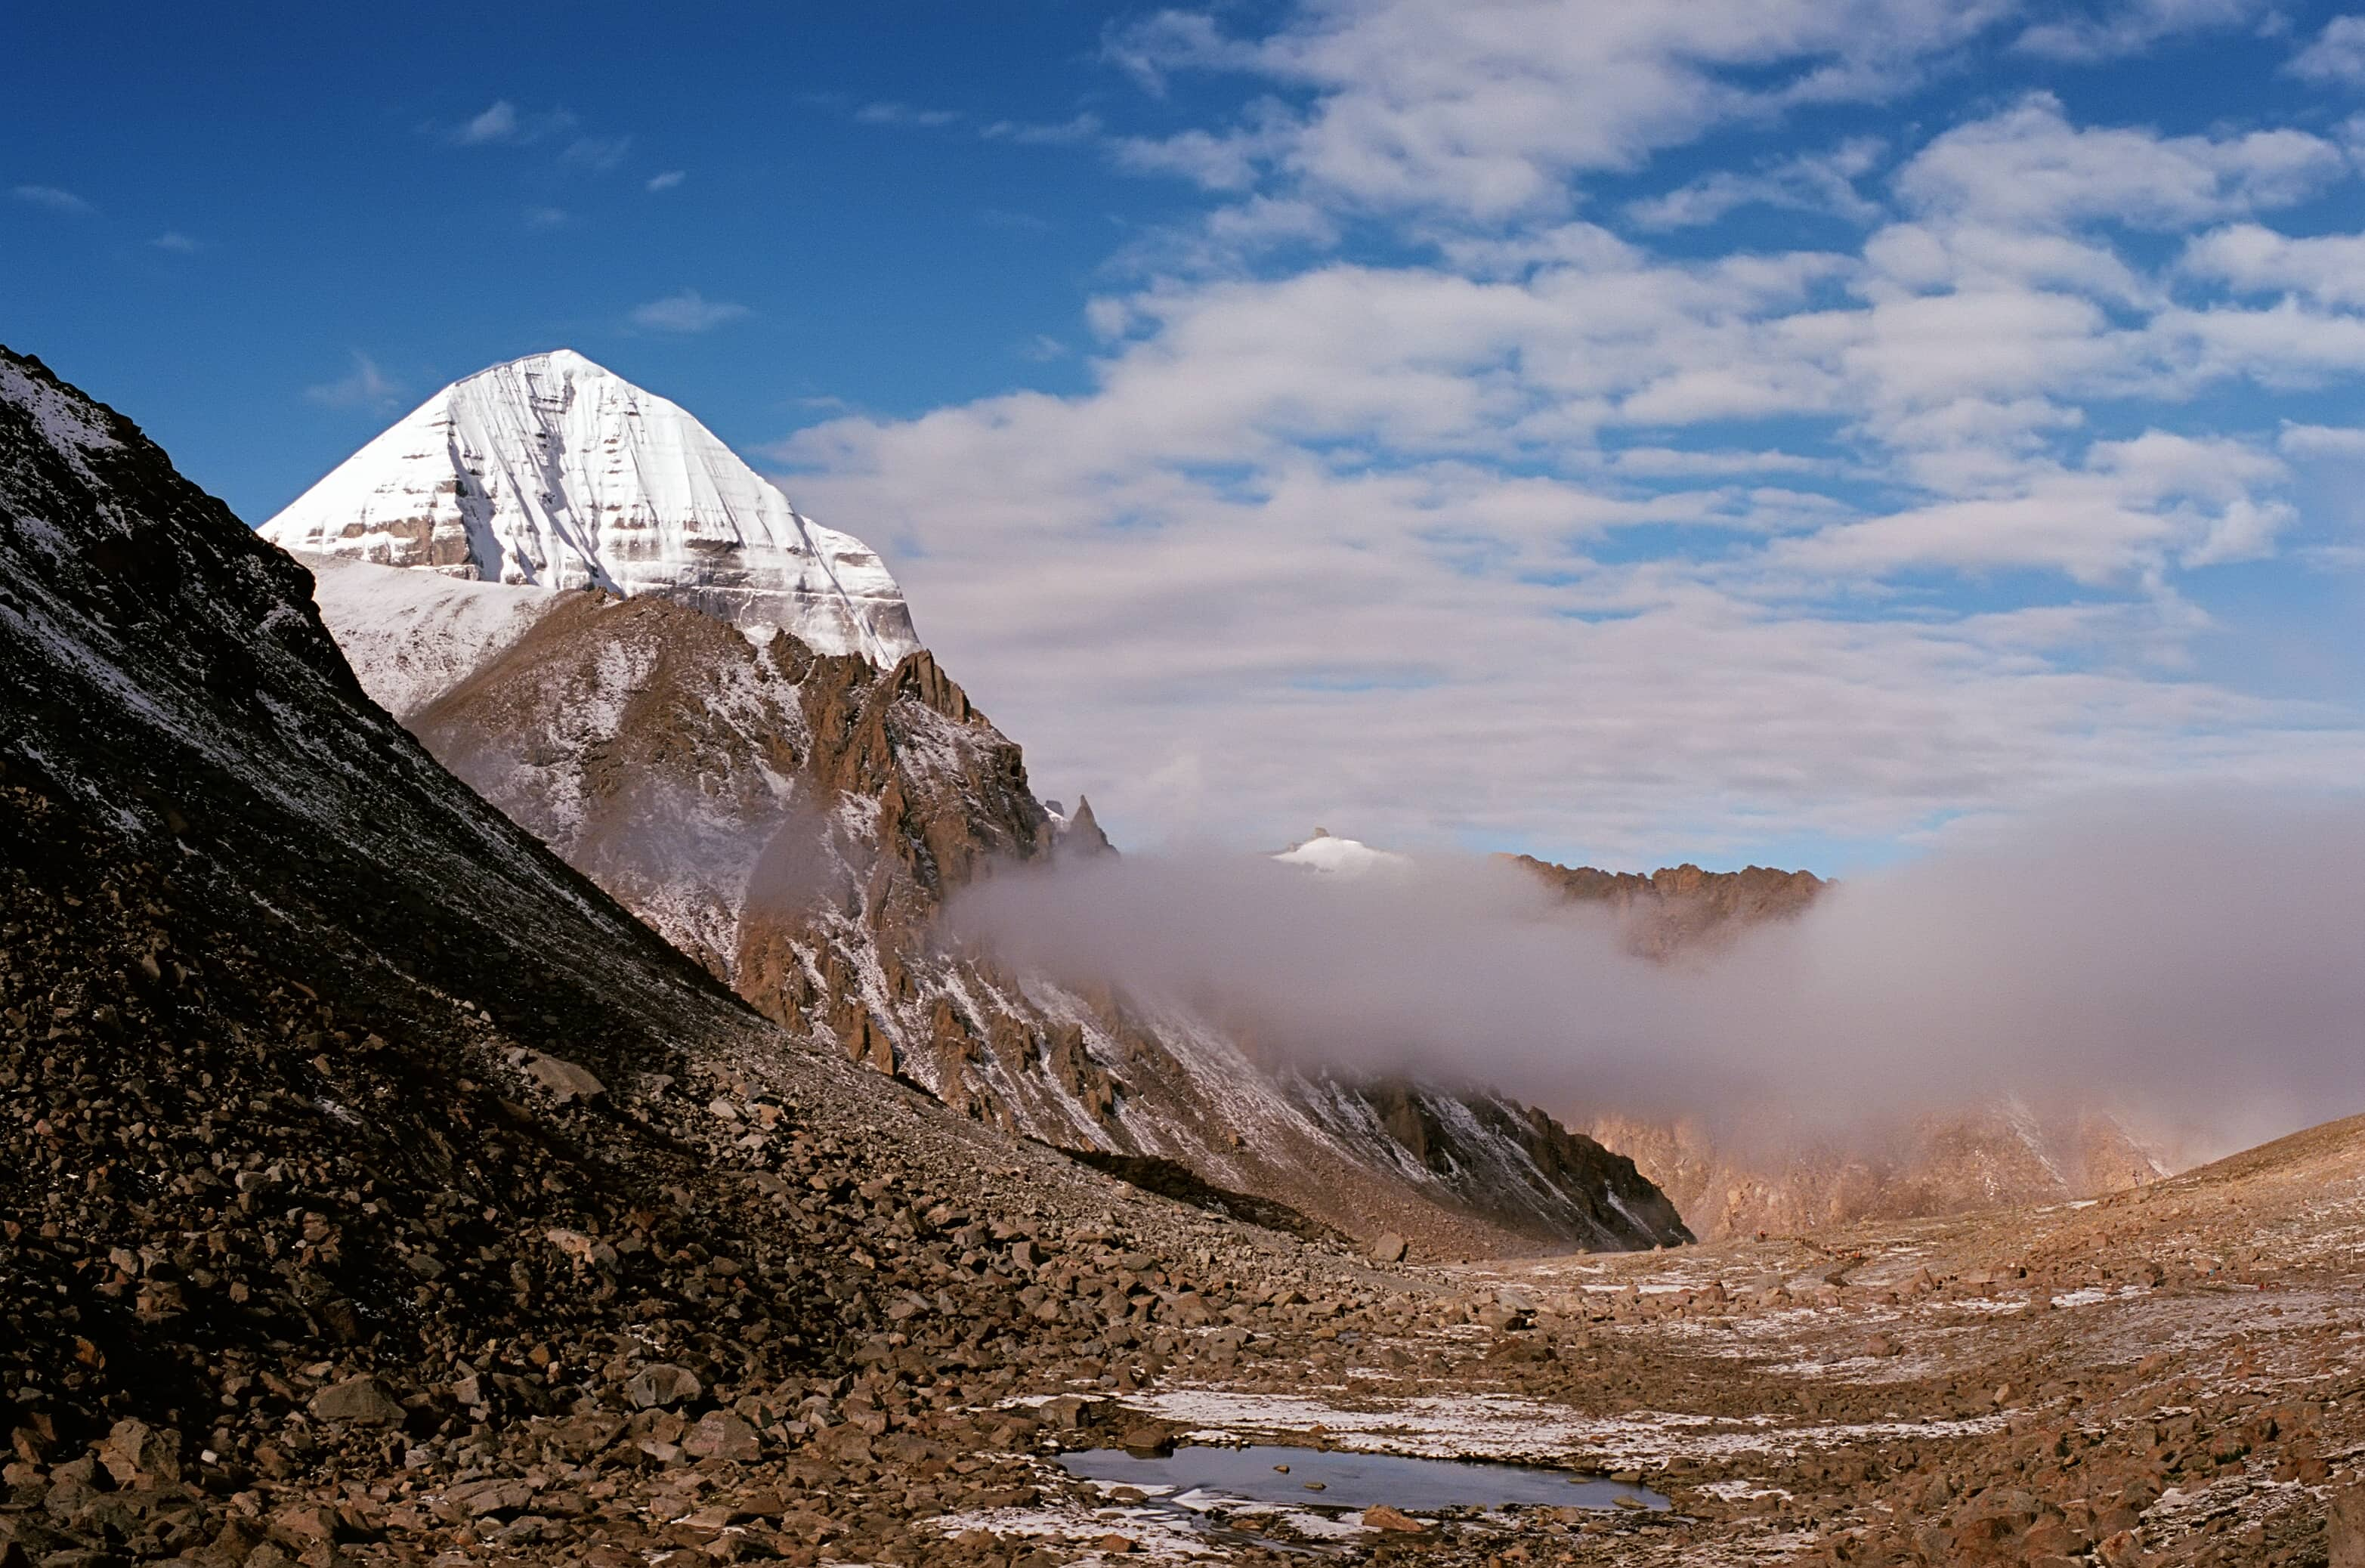 East Face of the sacred Mount Kailash in Tibet